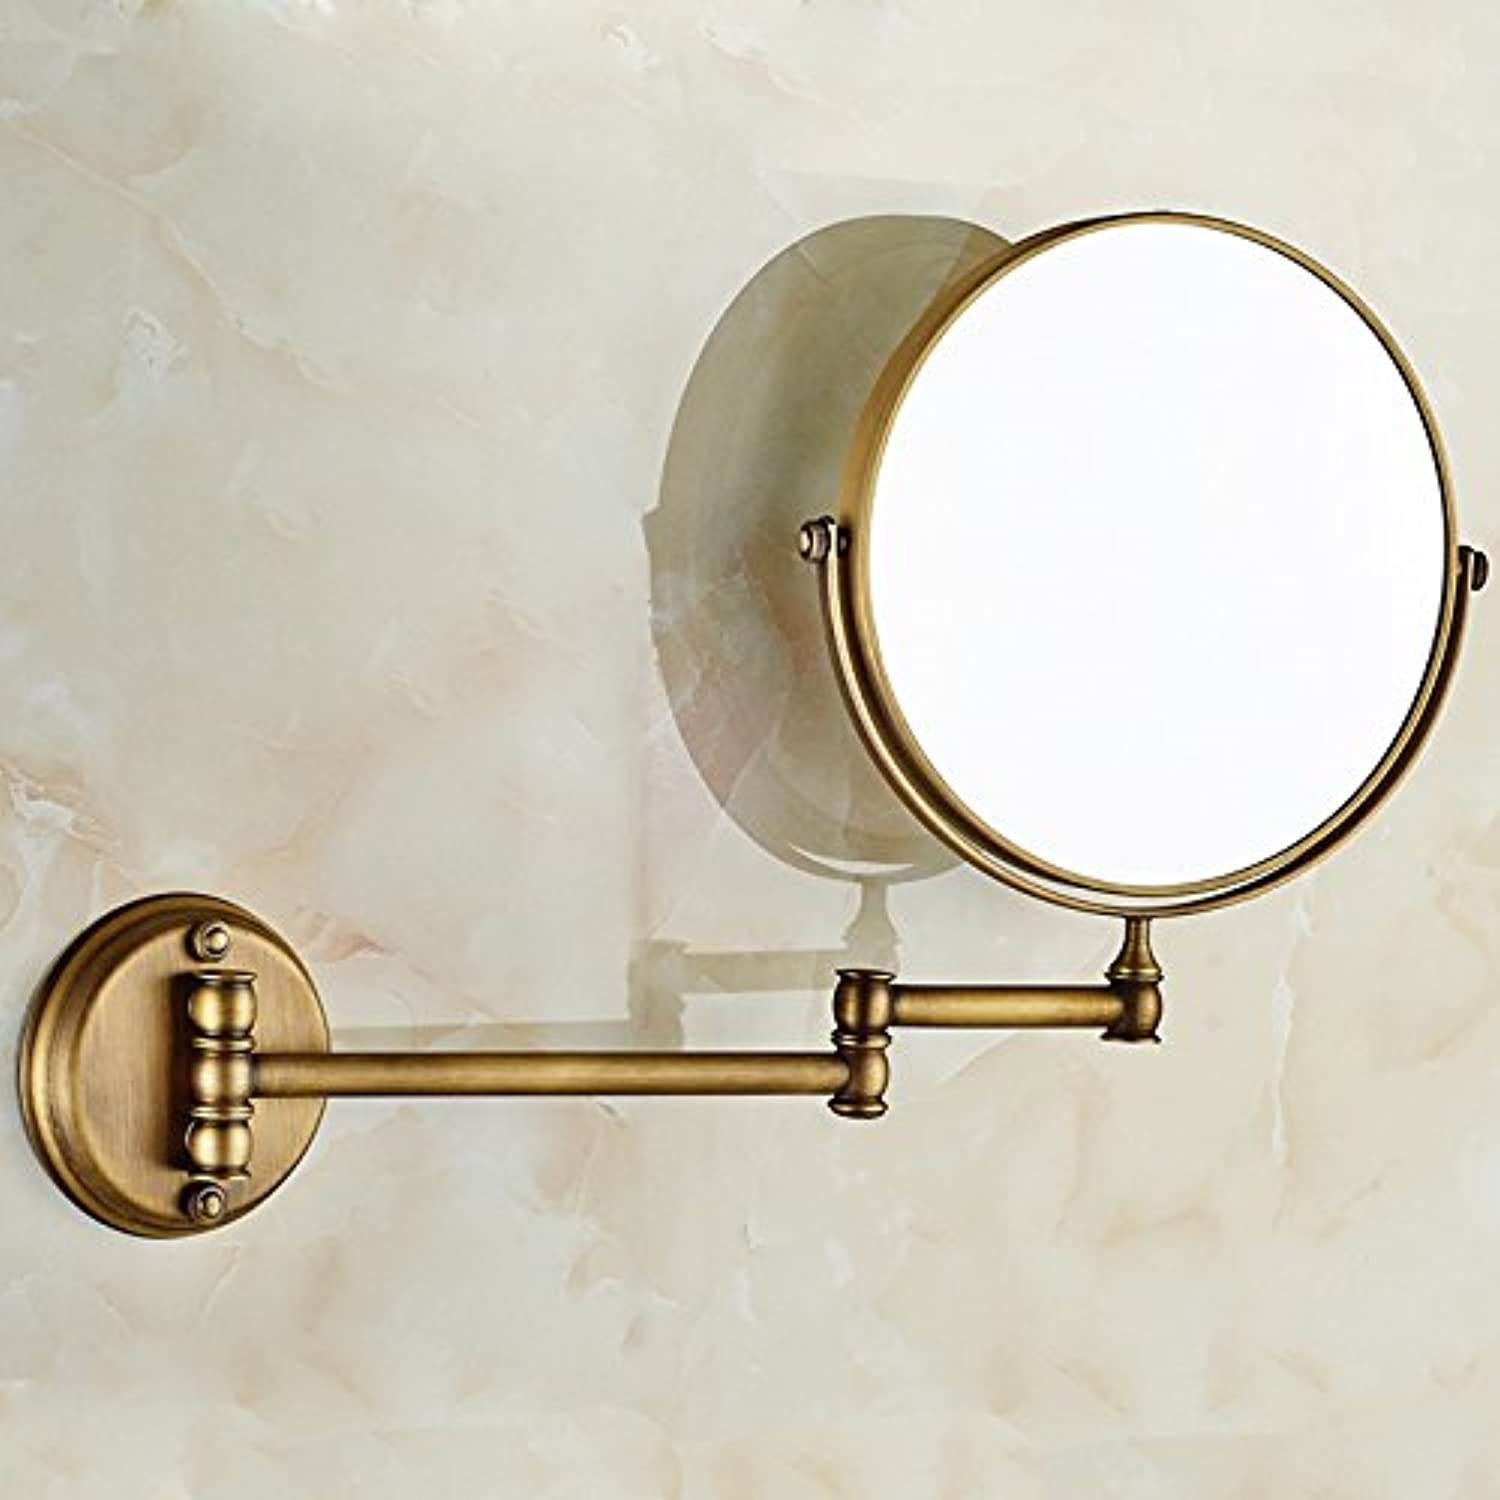 Folding mirror bathroom mirrors aluminum mirror in space two-sided mirror Flex wall mount makeup mirror-8 inch (Punch) antique 8 inches 20 cm